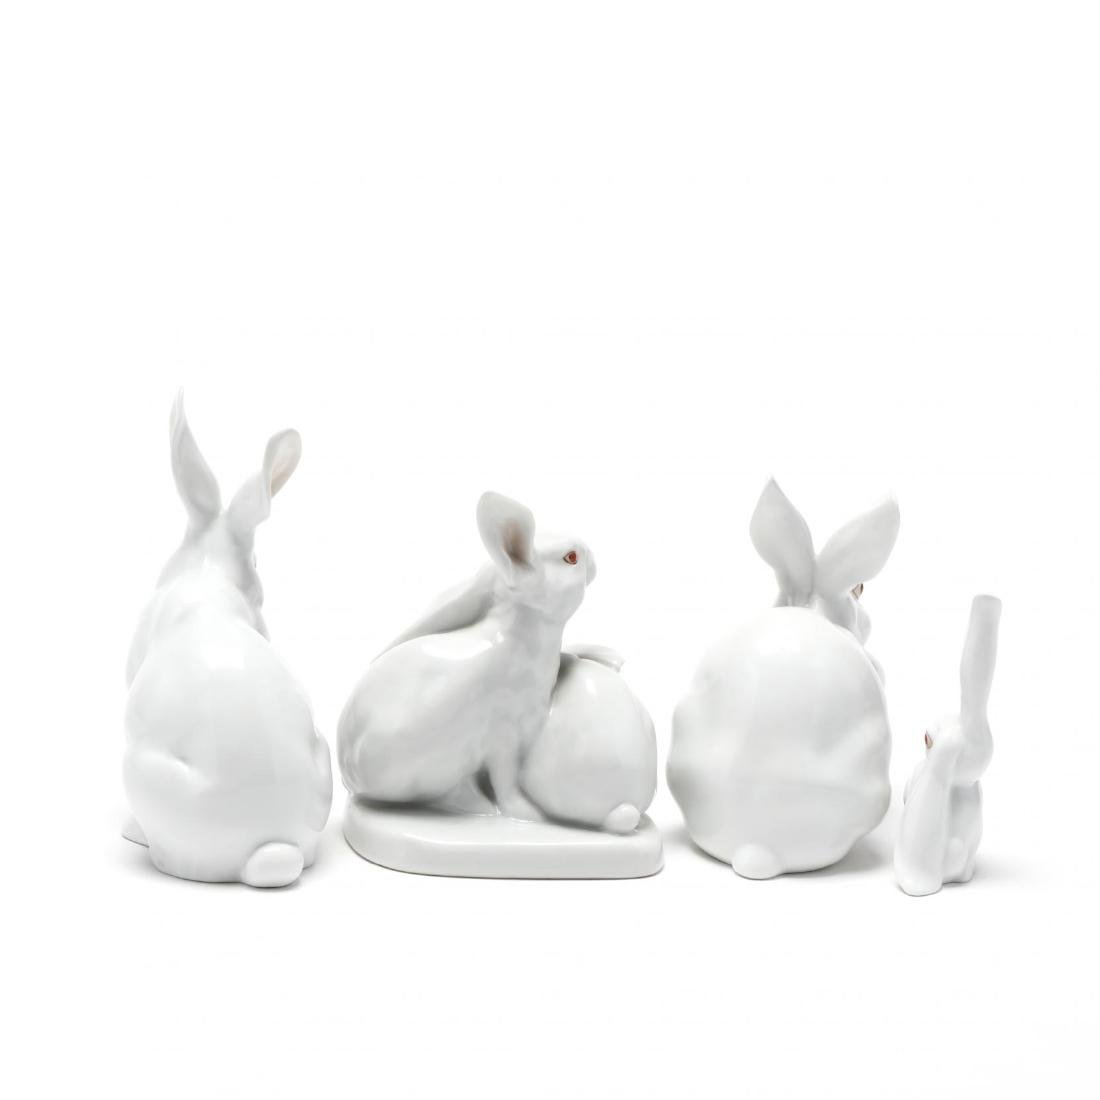 Four Herend Natural Porcelain Rabbits - 3